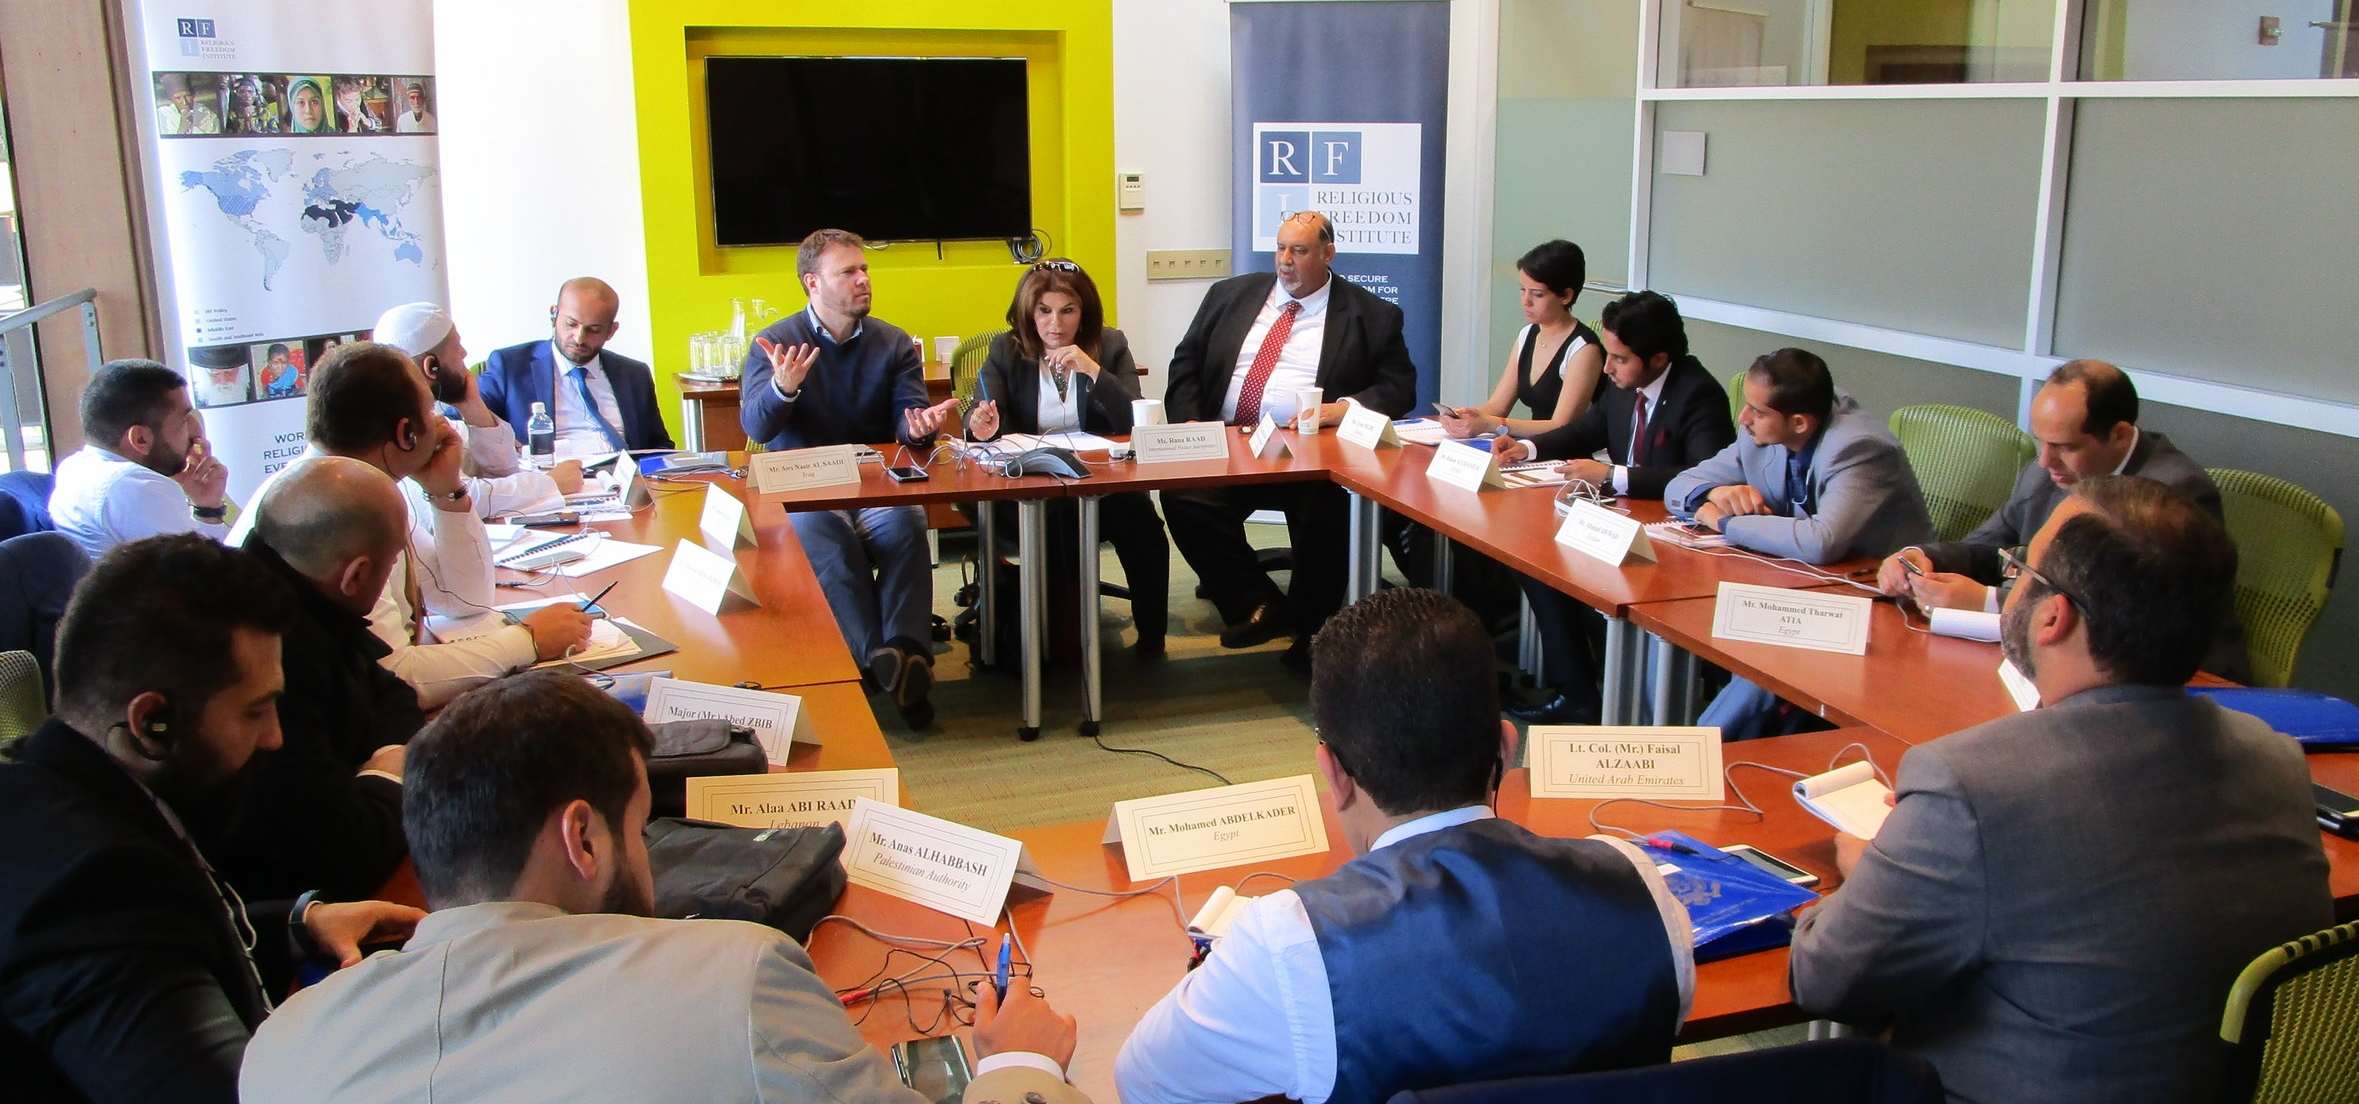 Ismail Royer, Research and Program Associate, led the discussion with participants from across the Middle East and North Africa.